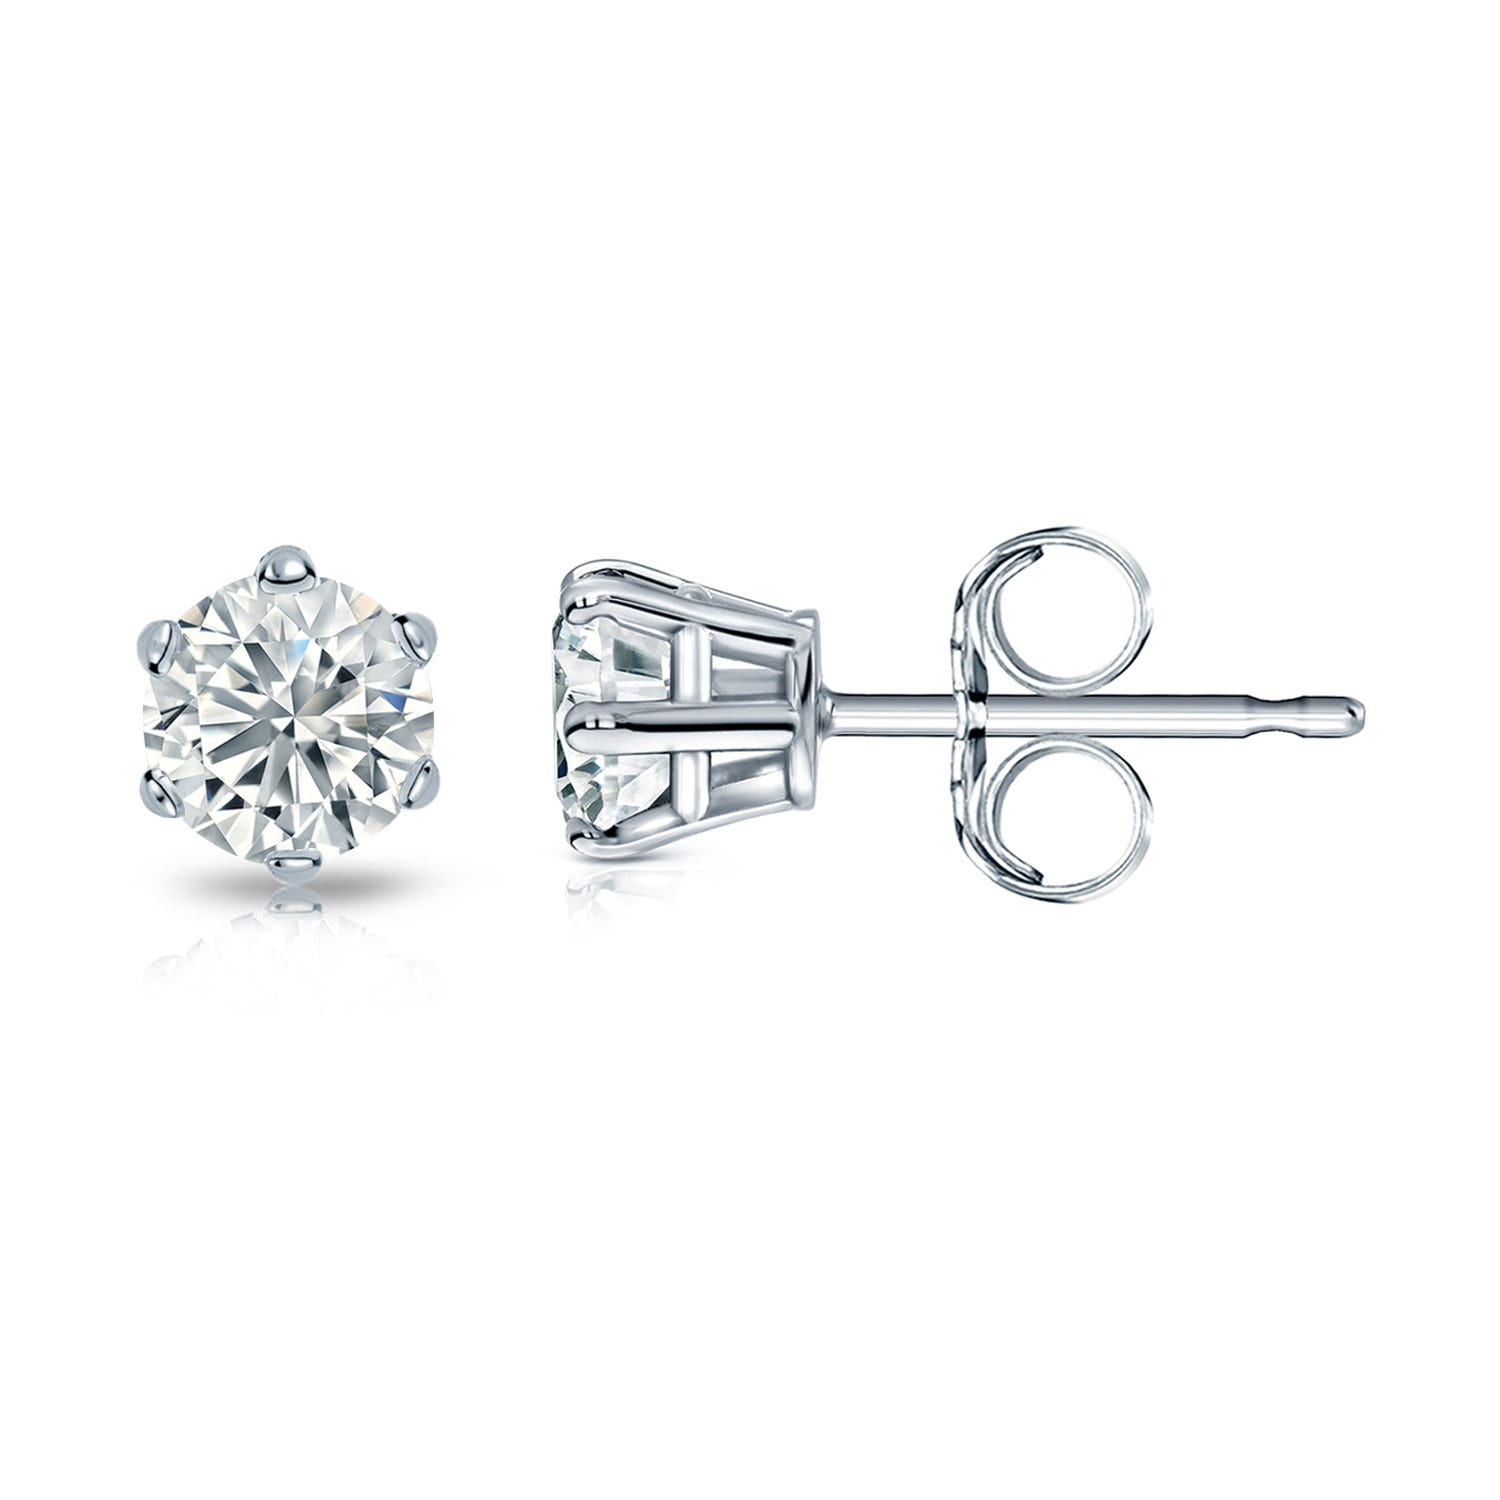 Round Diamond 3/8ctw. (IJ-SI1) Solitaire Stud 6-Prong Earrings in 14K White Gold